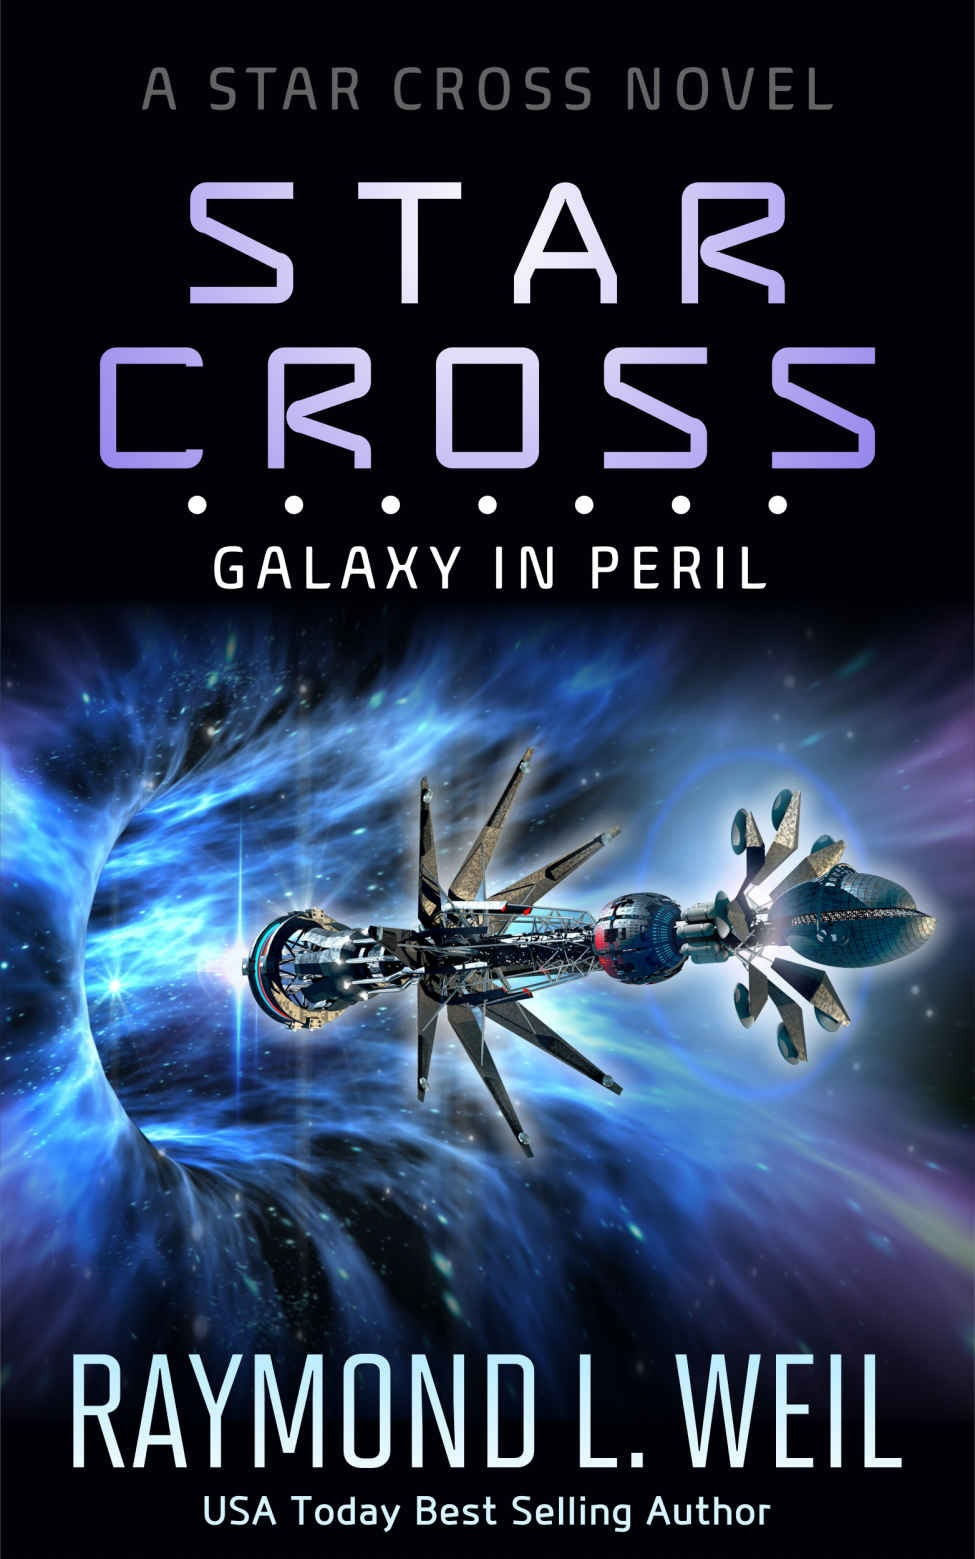 Galaxy in Peril: My kind of story.